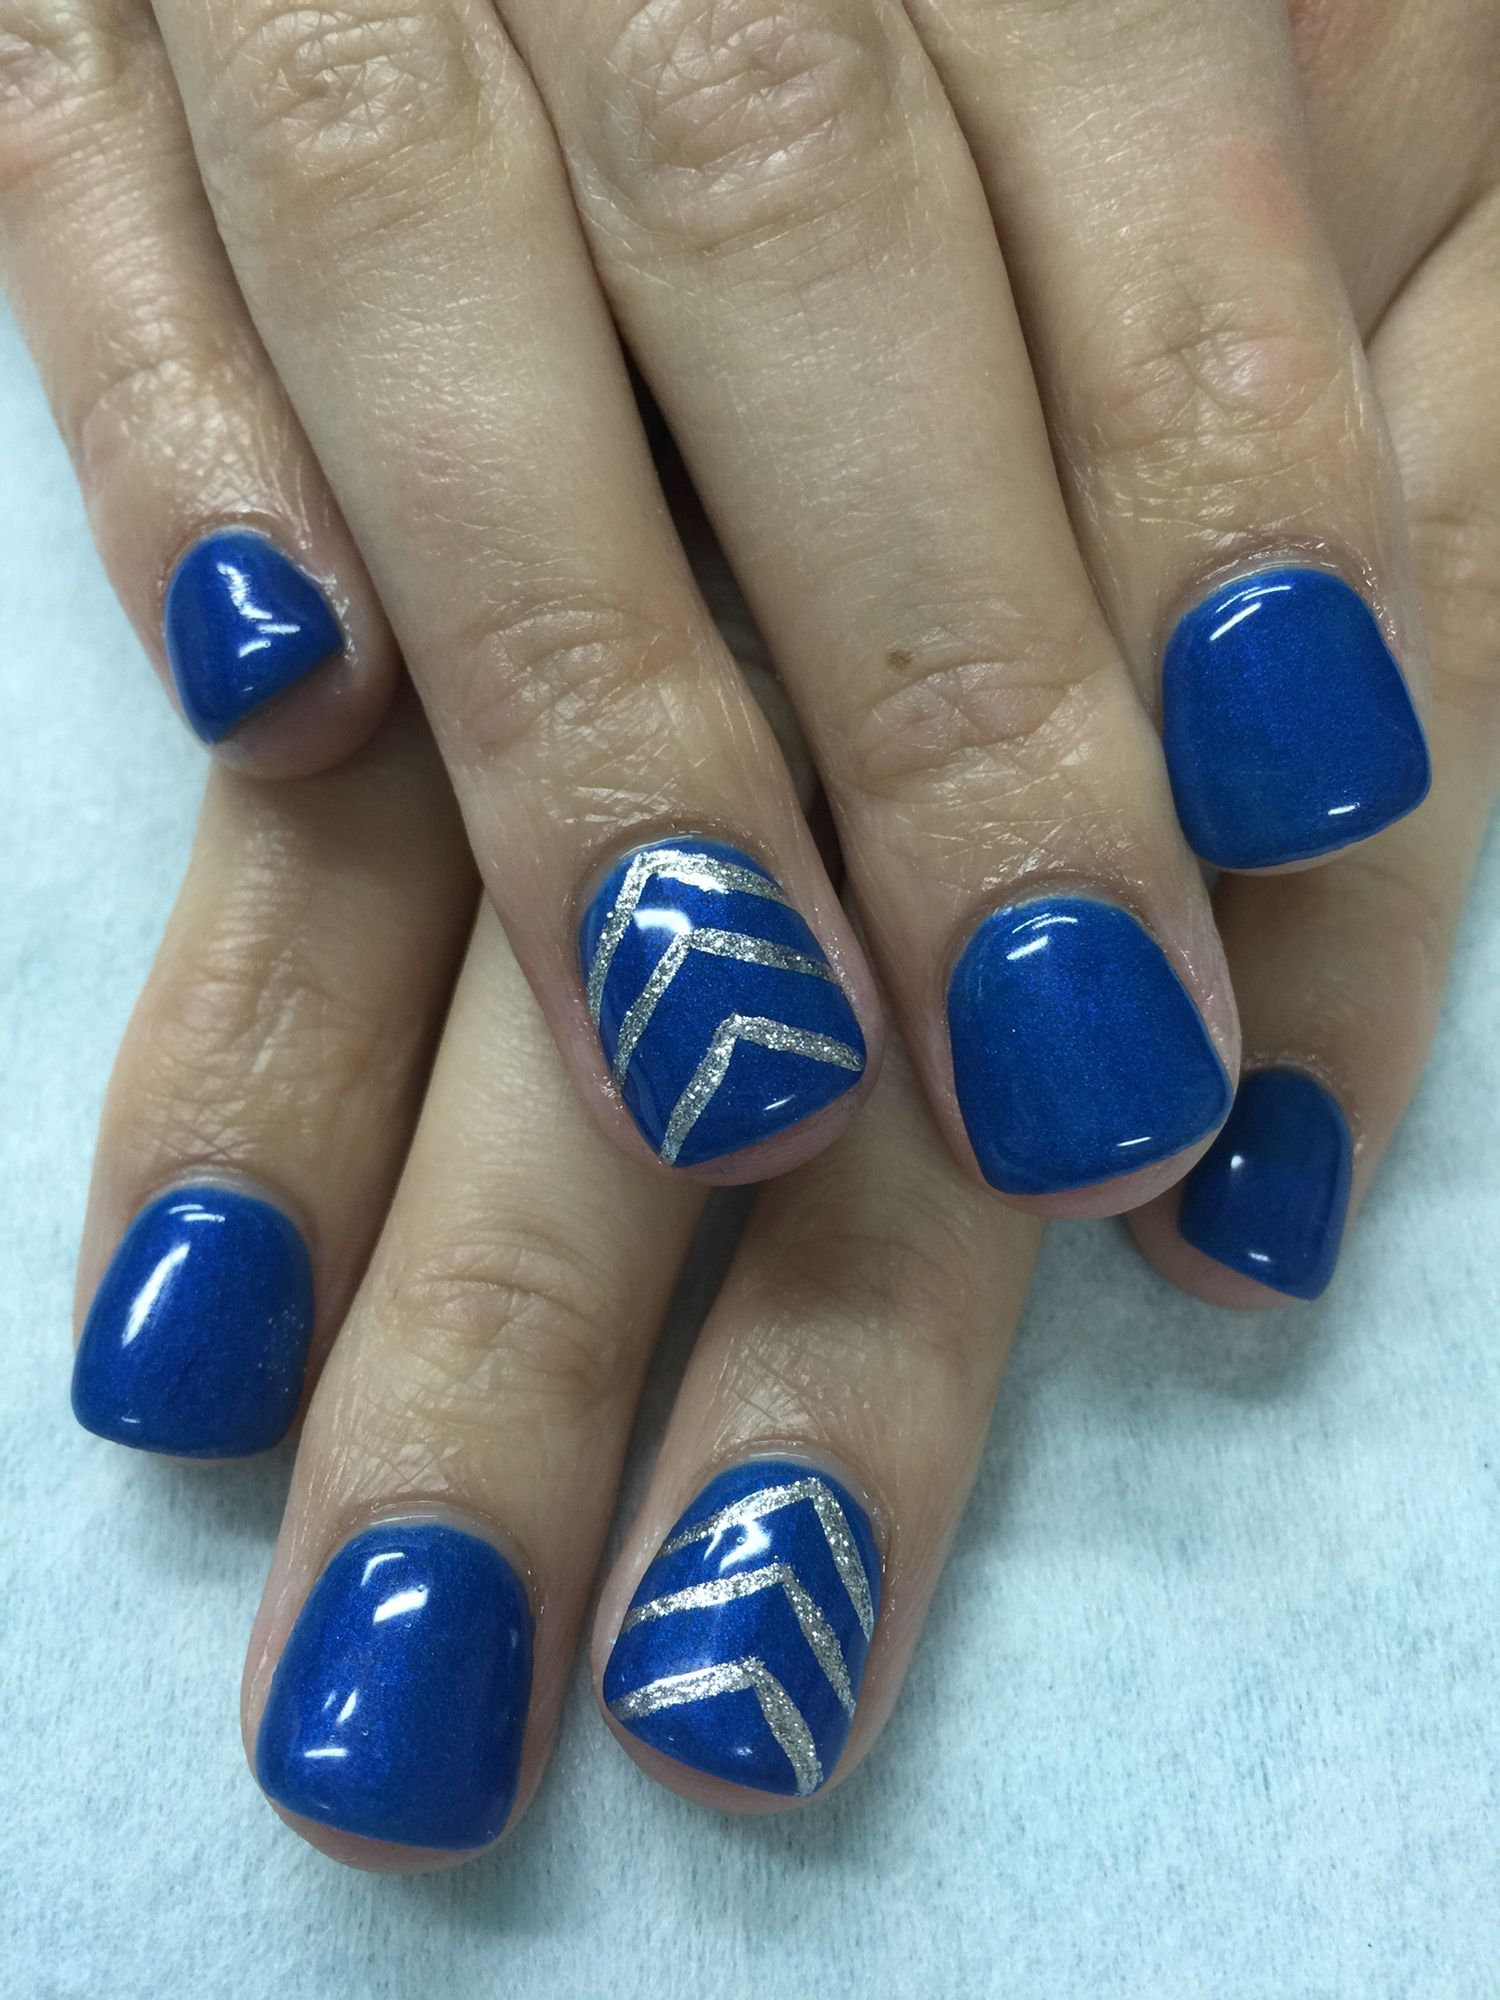 Royal blue glow in the dark gel nails accented with silver glitter ...